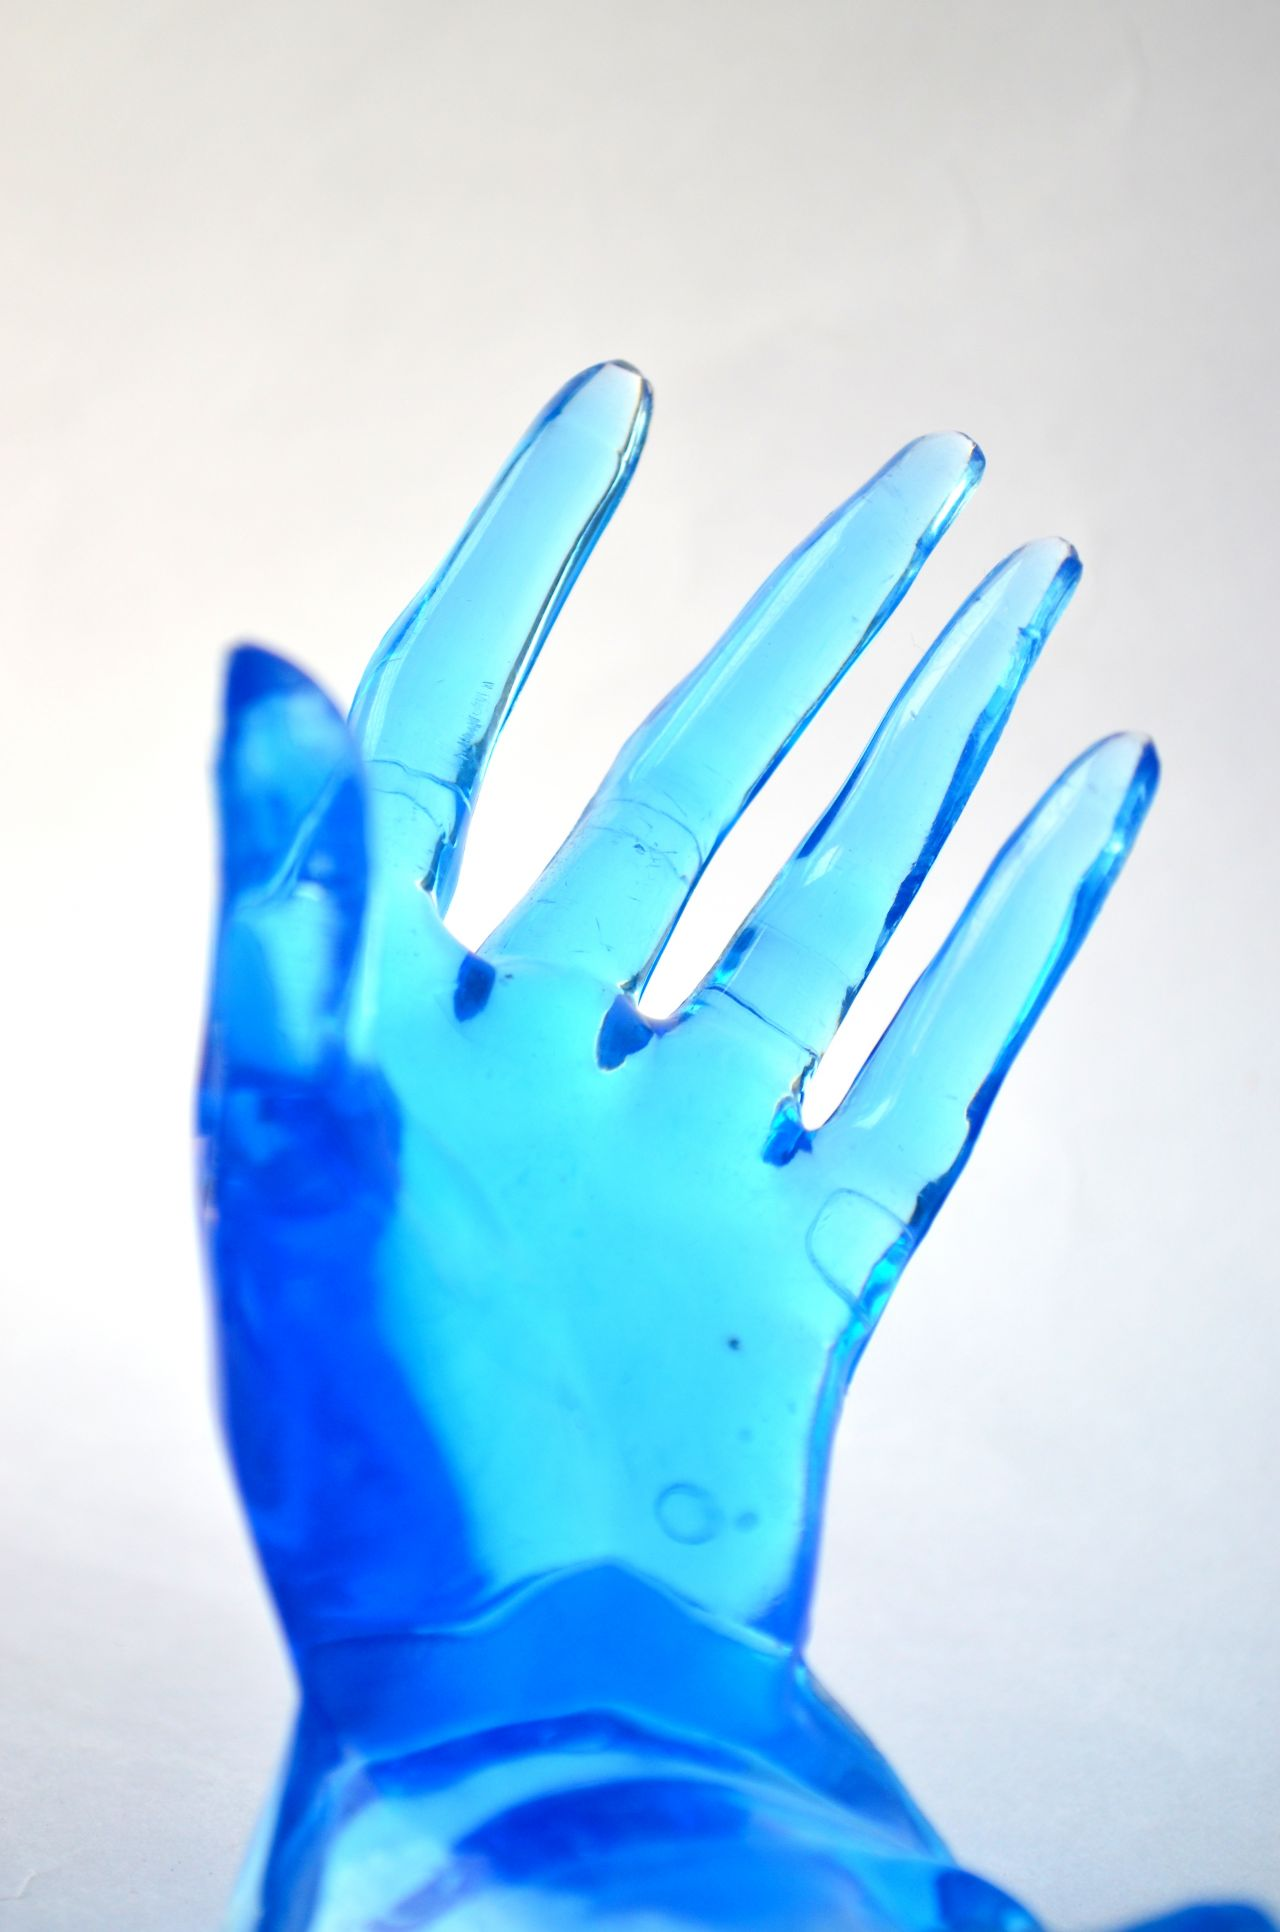 """Free photo """"Blue Hands 1"""""""